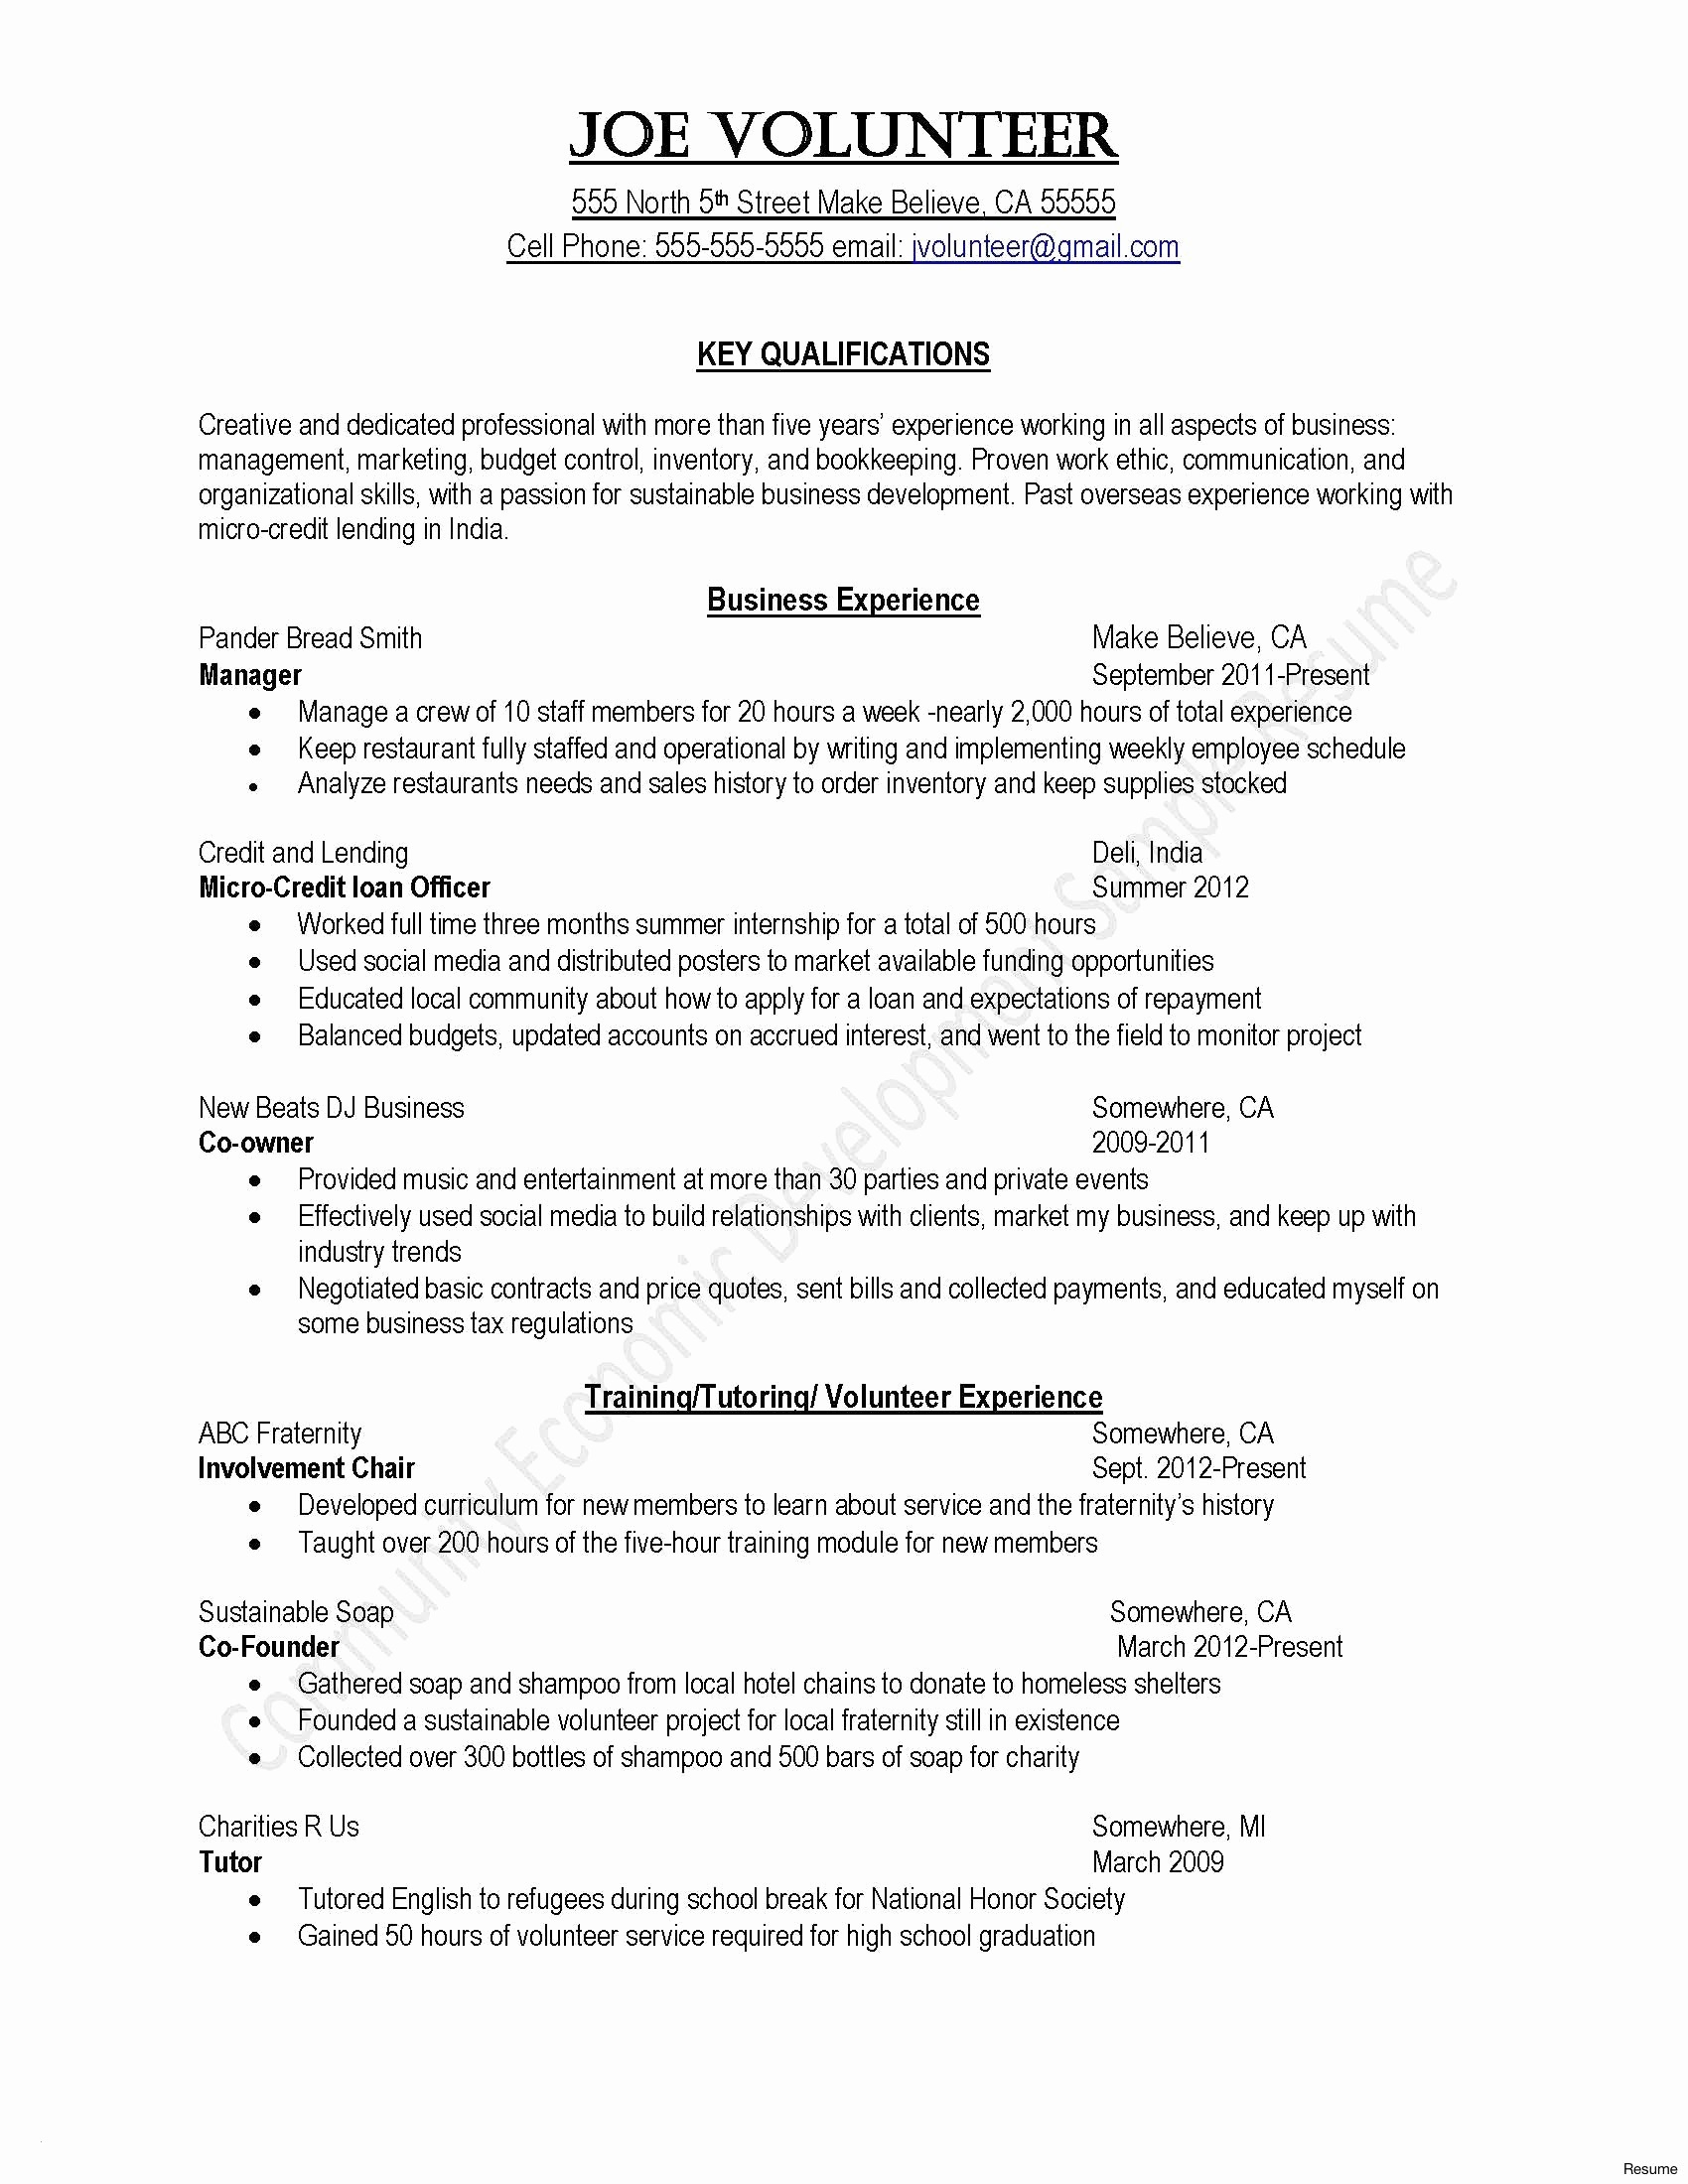 Resume for Medical Receptionist - Chiropractic Receptionist Resume Paragraphrewriter